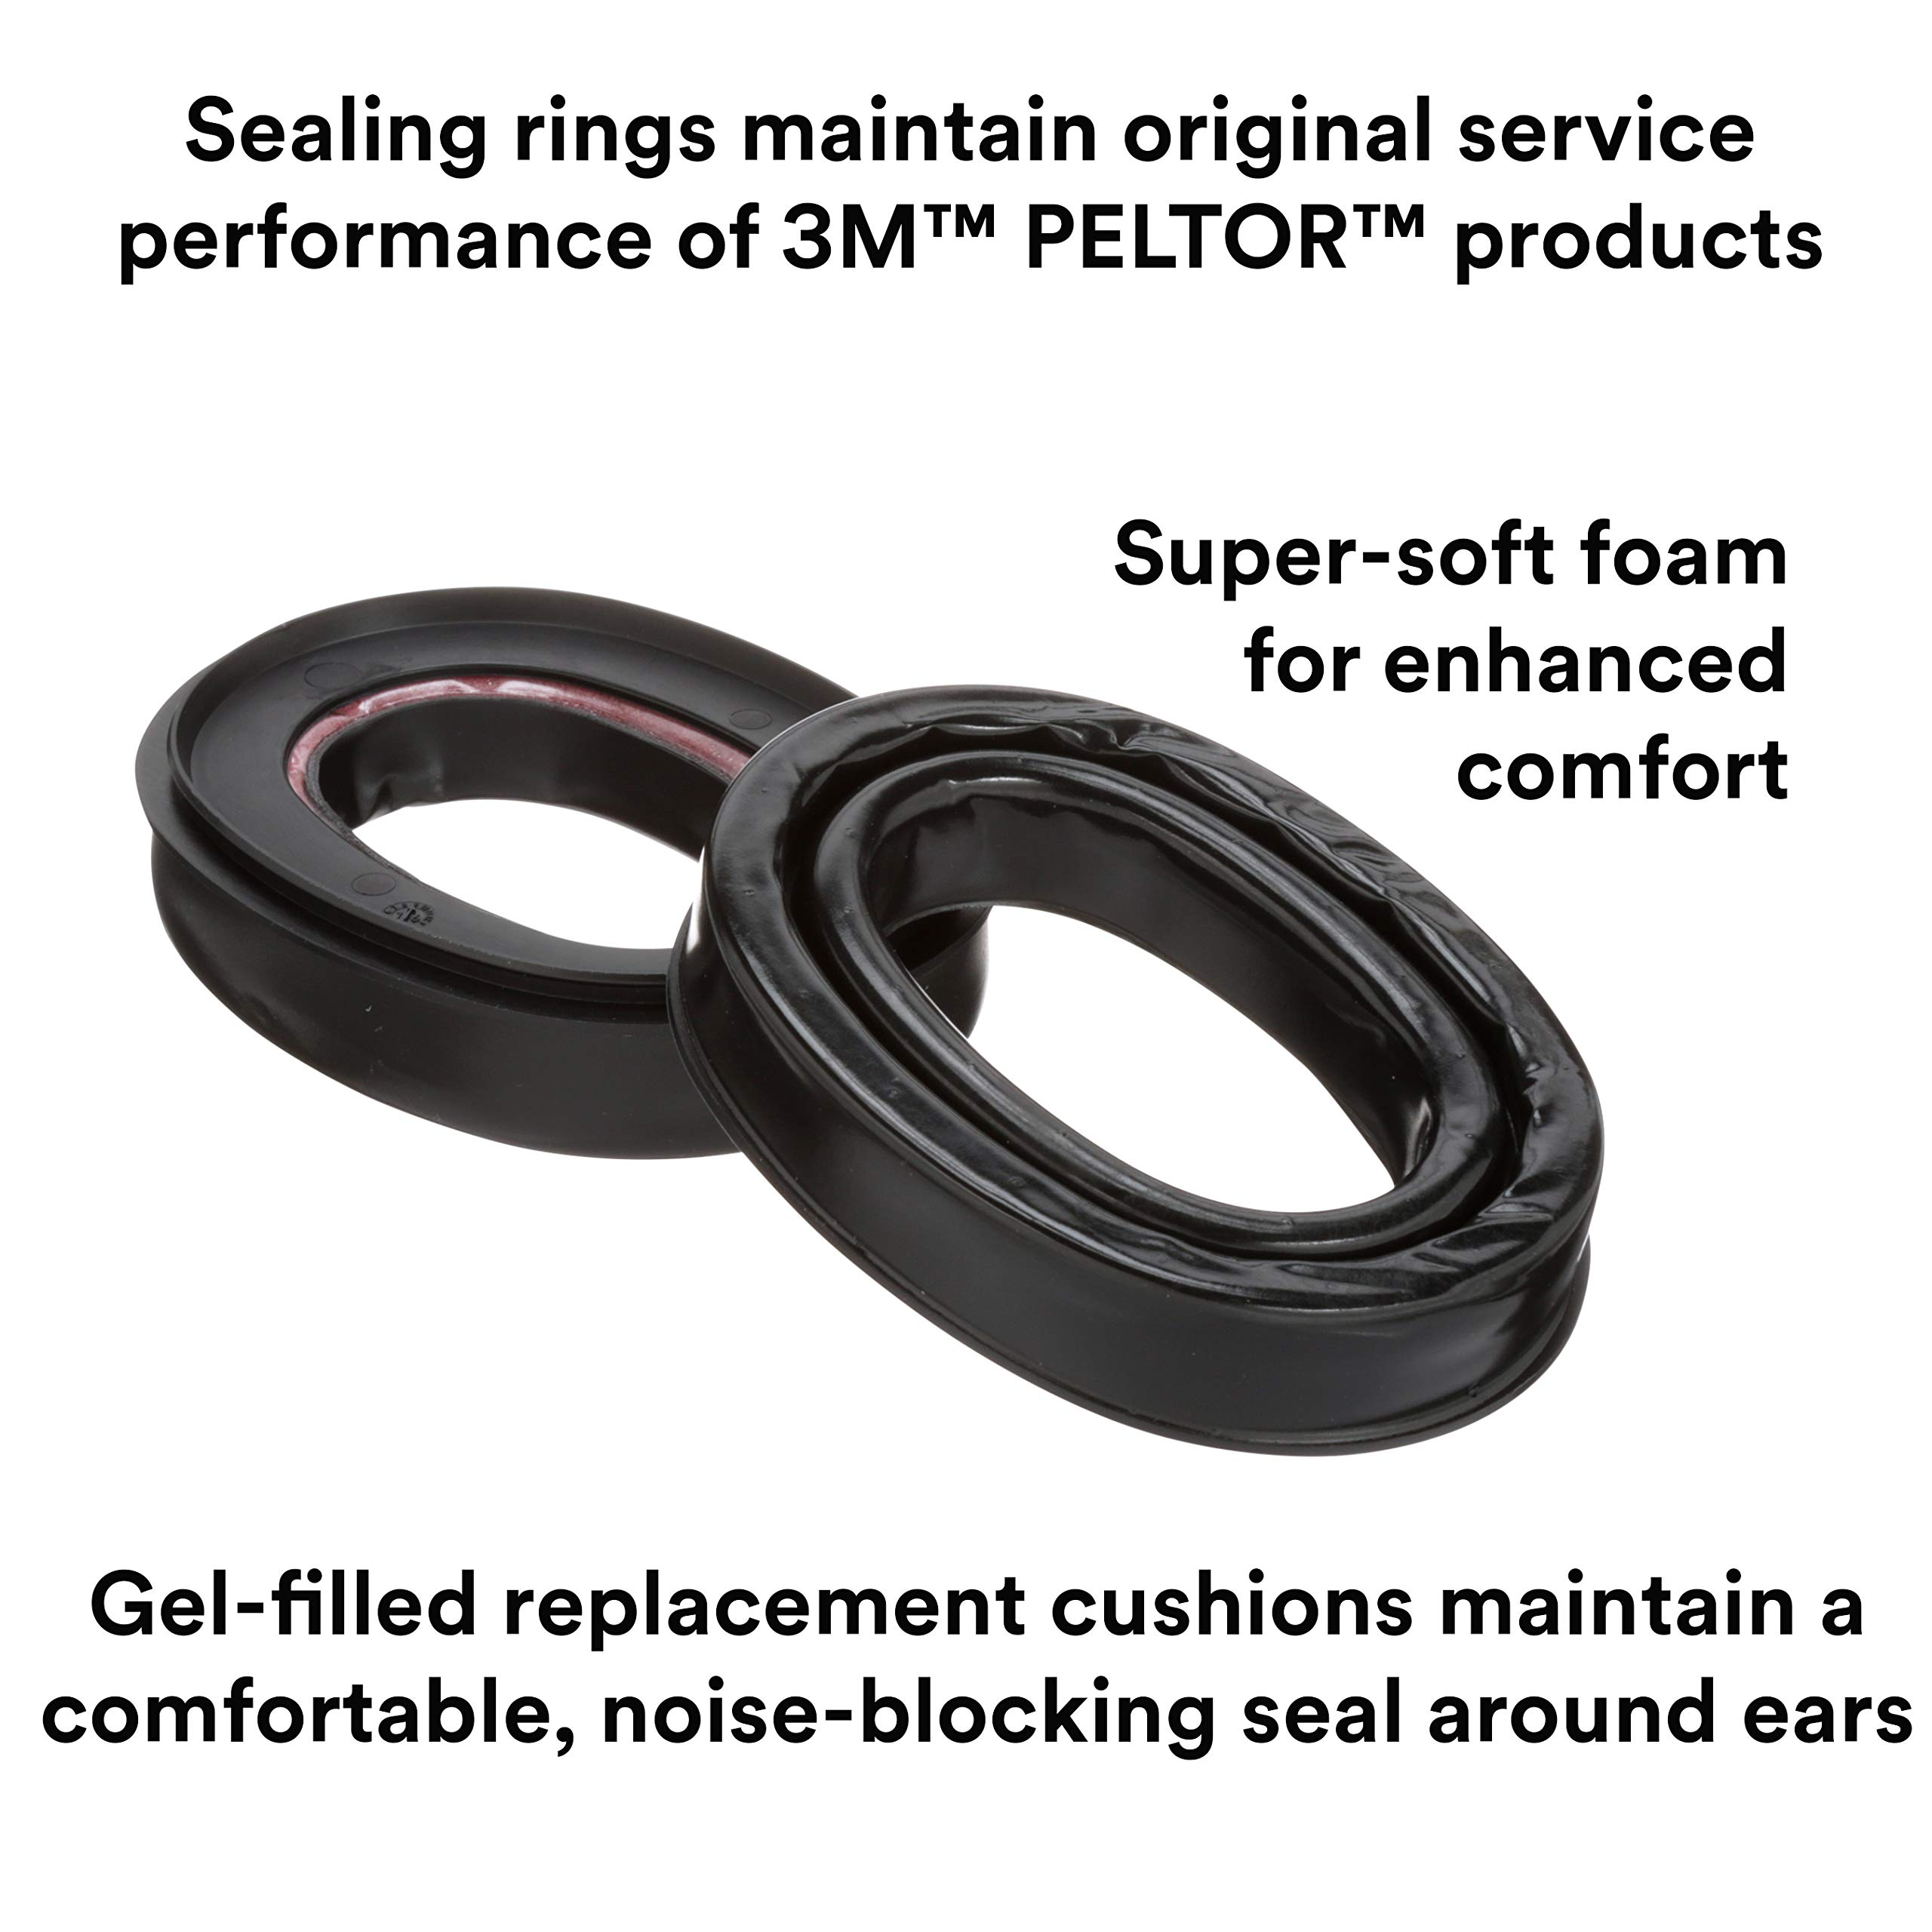 3M Personal Protective Equipment PELTOR Camelback Gel Sealing Rings HY80, Comfort Replacement Earmuff Cushions, Black by 3M Personal Protective Equipment (Image #3)